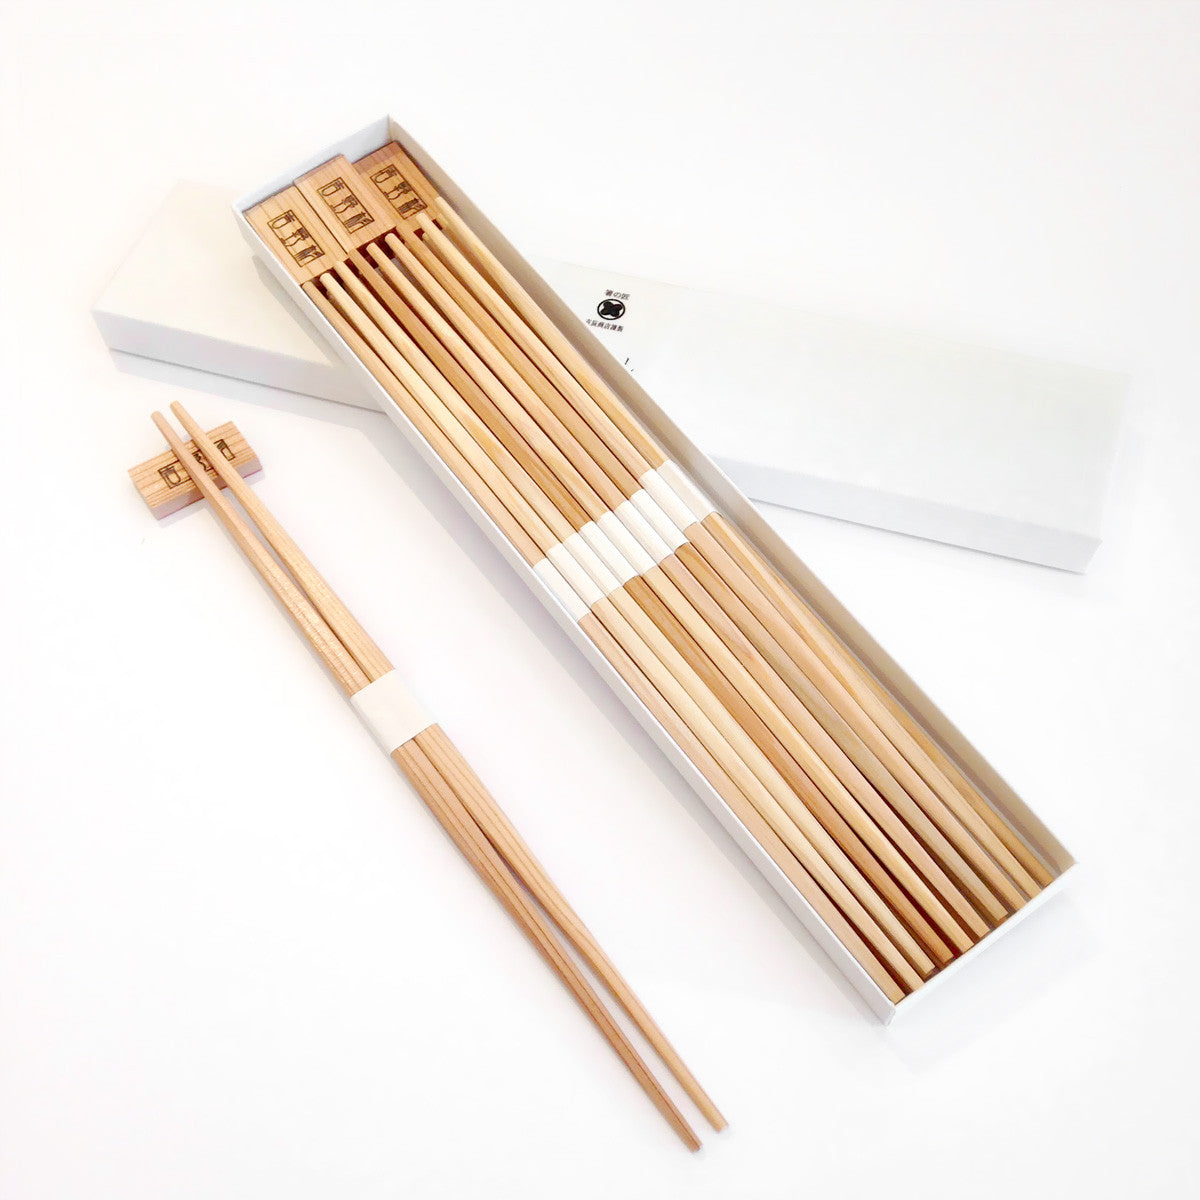 Yoshino Cedar Chopsticks with Chopsticks Rest - 10 pair